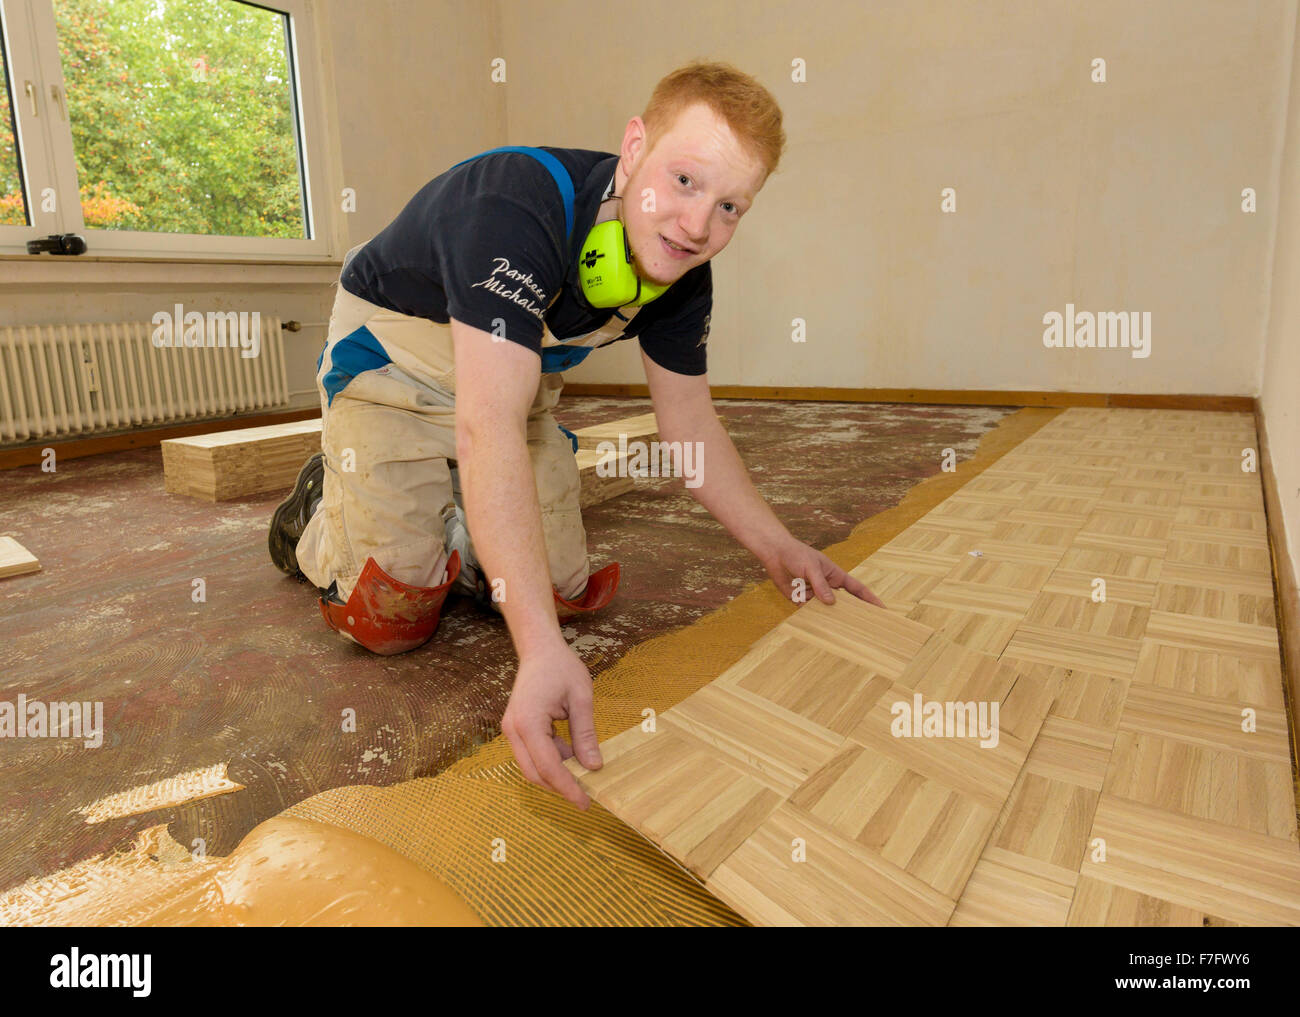 A parquet layer does his job. - Stock Image